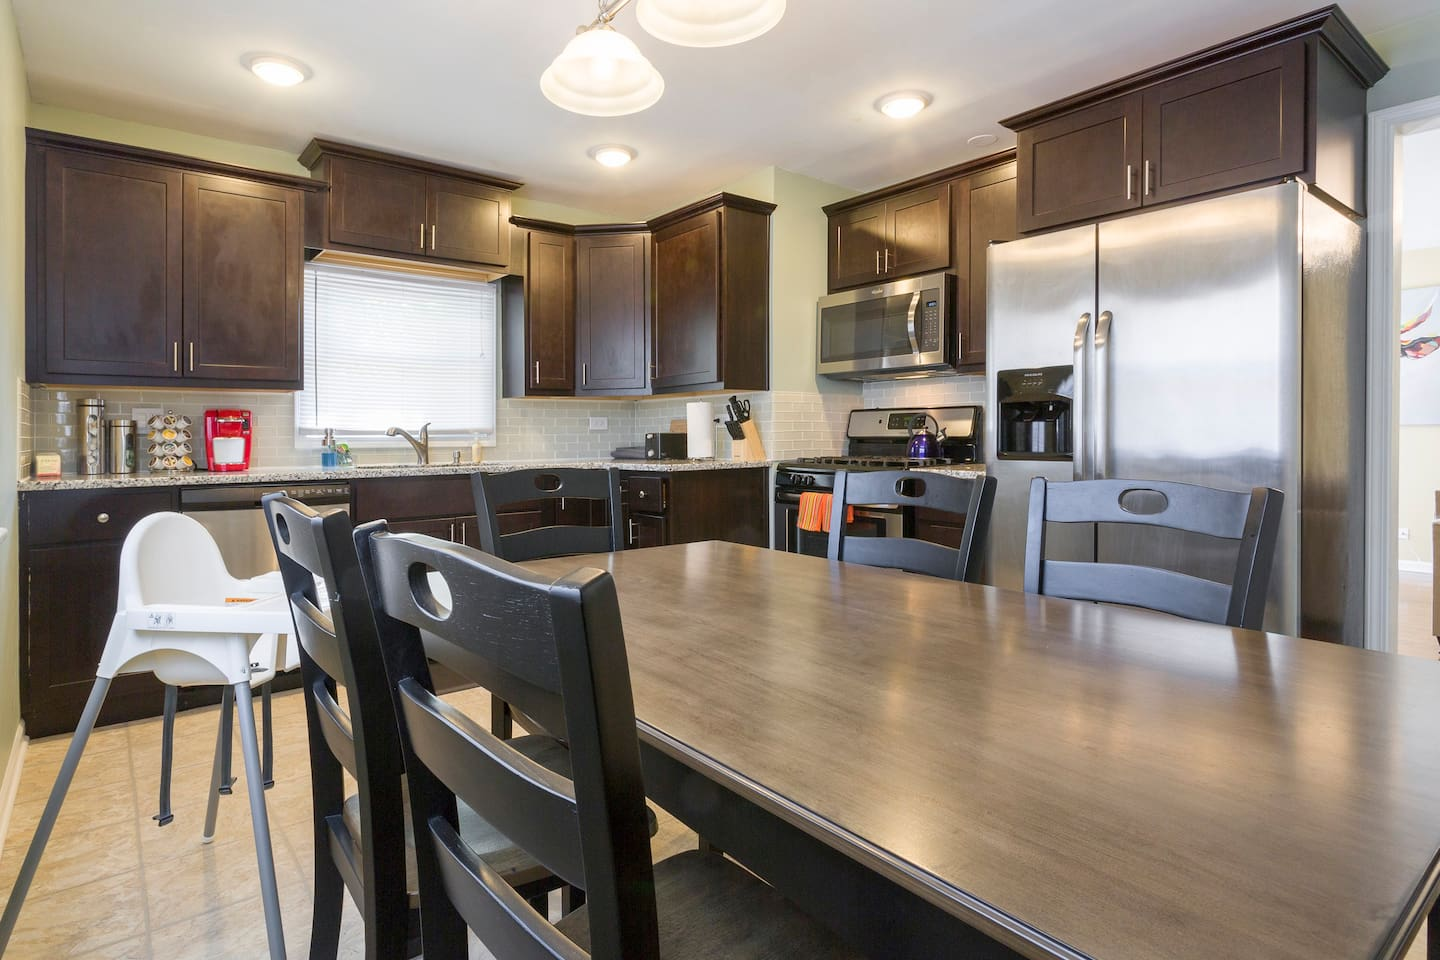 Imagine yourself cooking at this spacious kitchen. We are stocked  with many items useful in cooking at home.  Complimentary Keurig with coffee/cream/sugar & Tea ☕️.